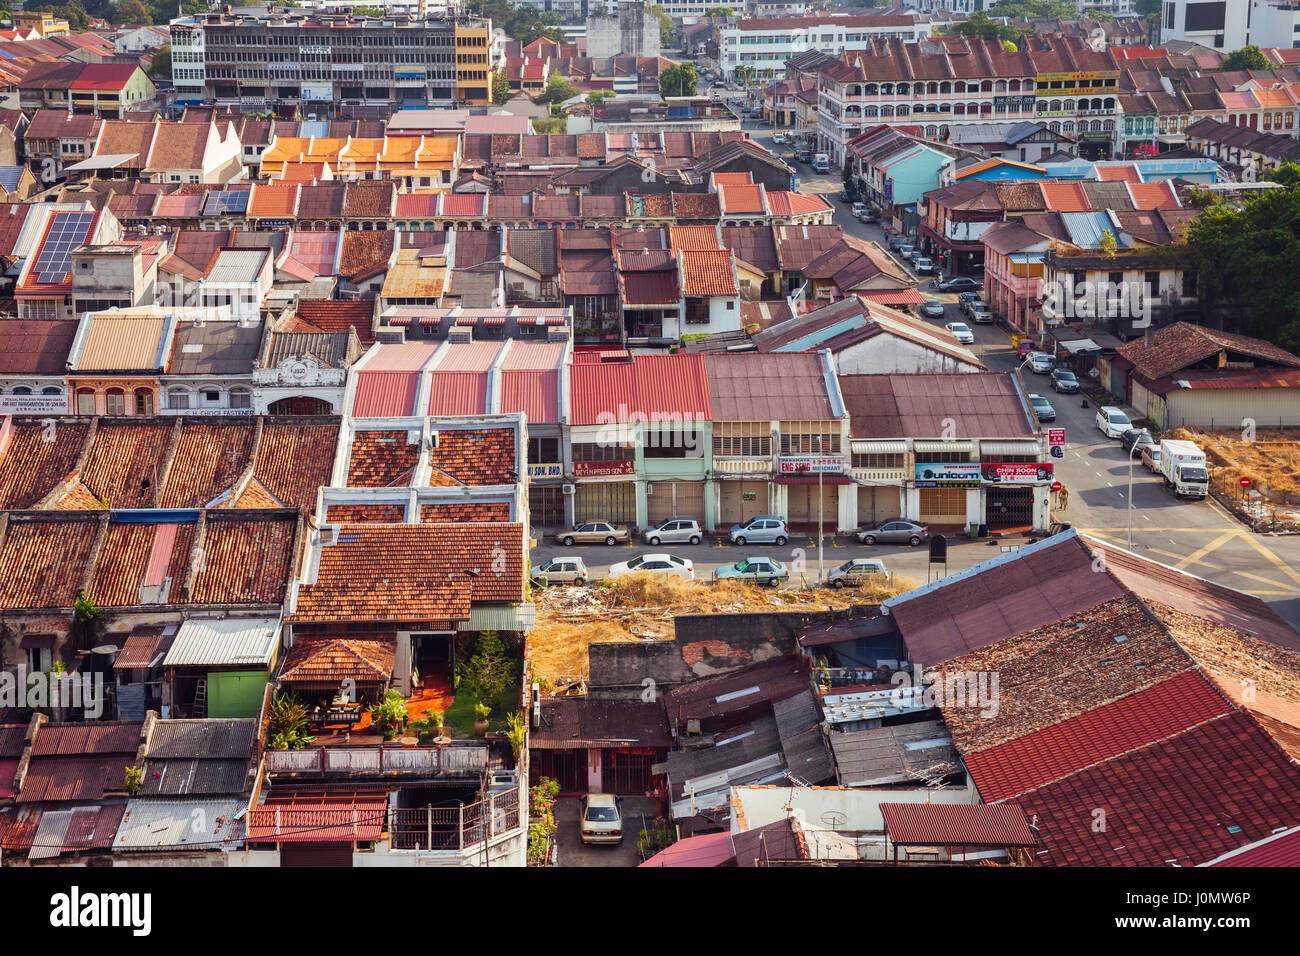 Georgetown, Malaysia - March 27, 2016: Panoramic view over historical part of the Georgetown on March 27, 2016 in Stock Photo